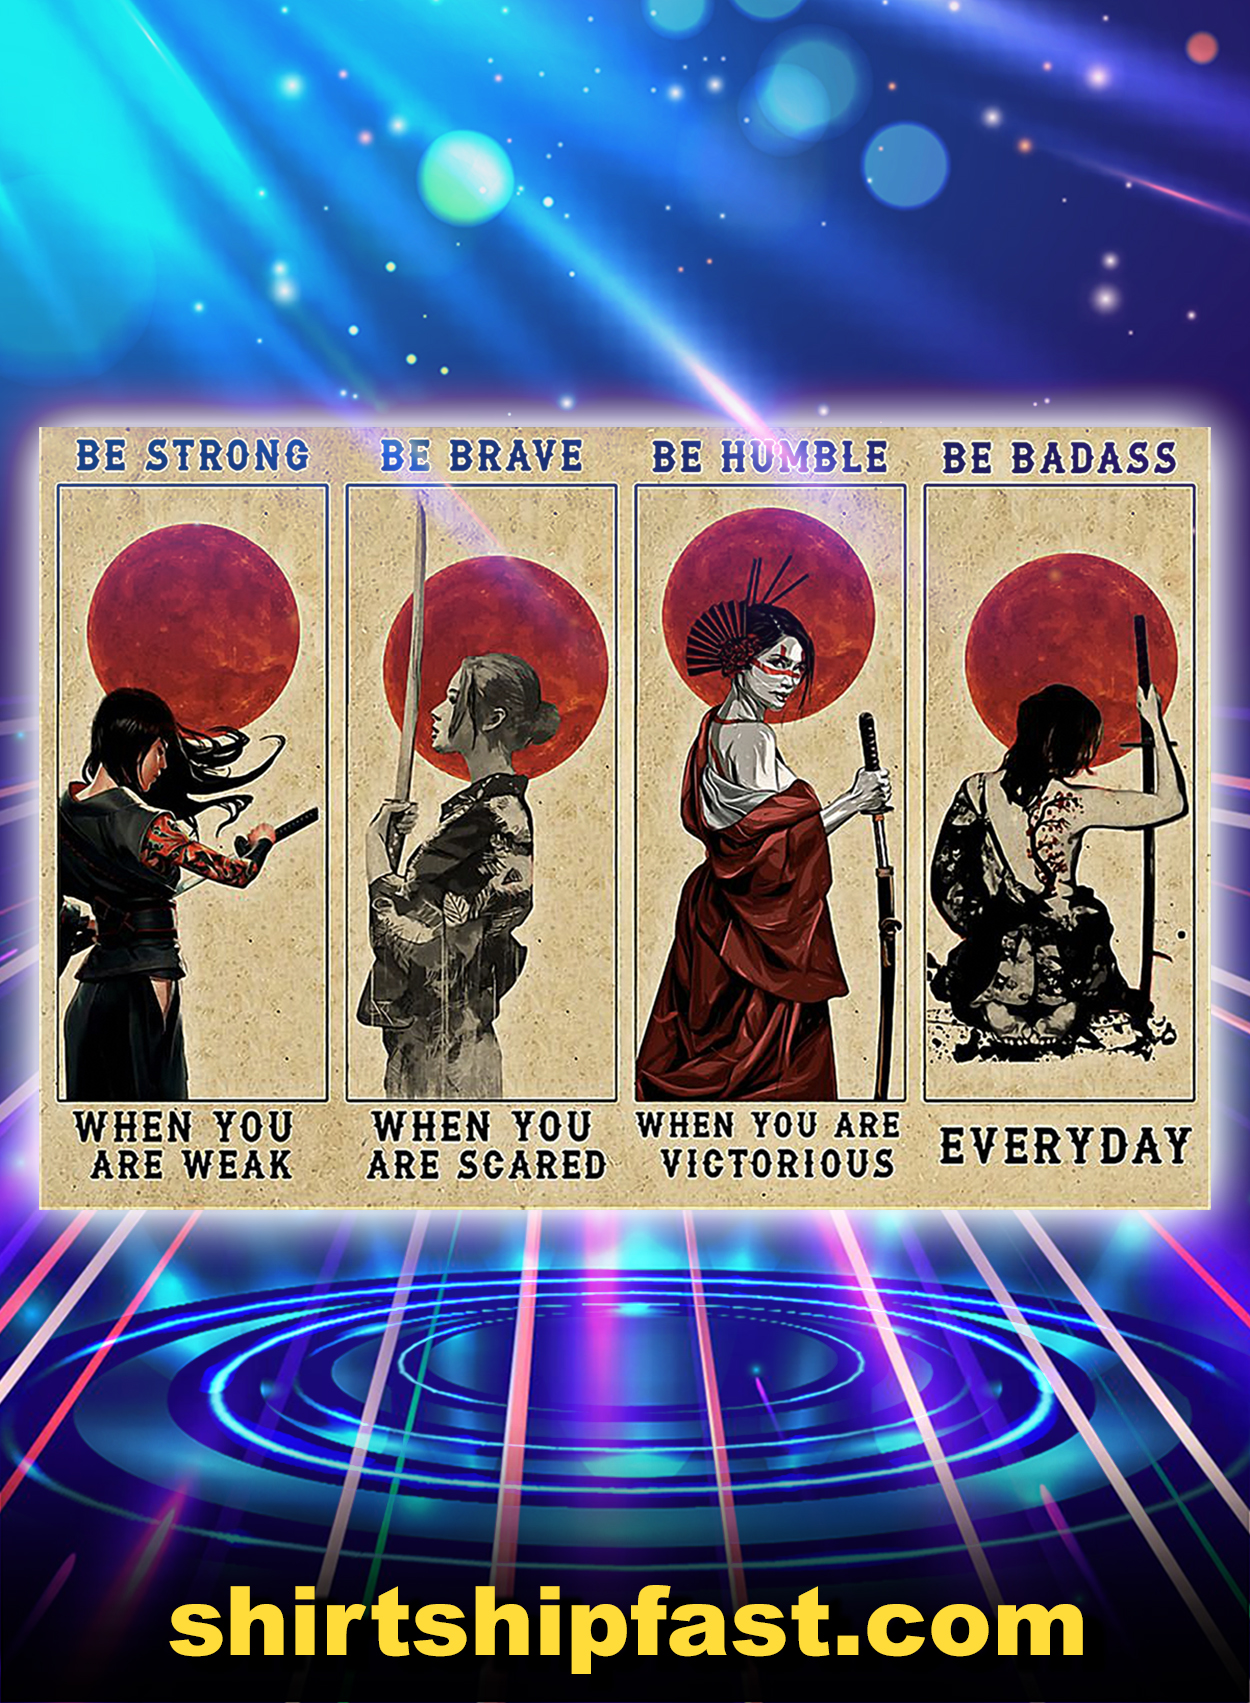 Female samurai be strong be brave be humble be badass poster - A3